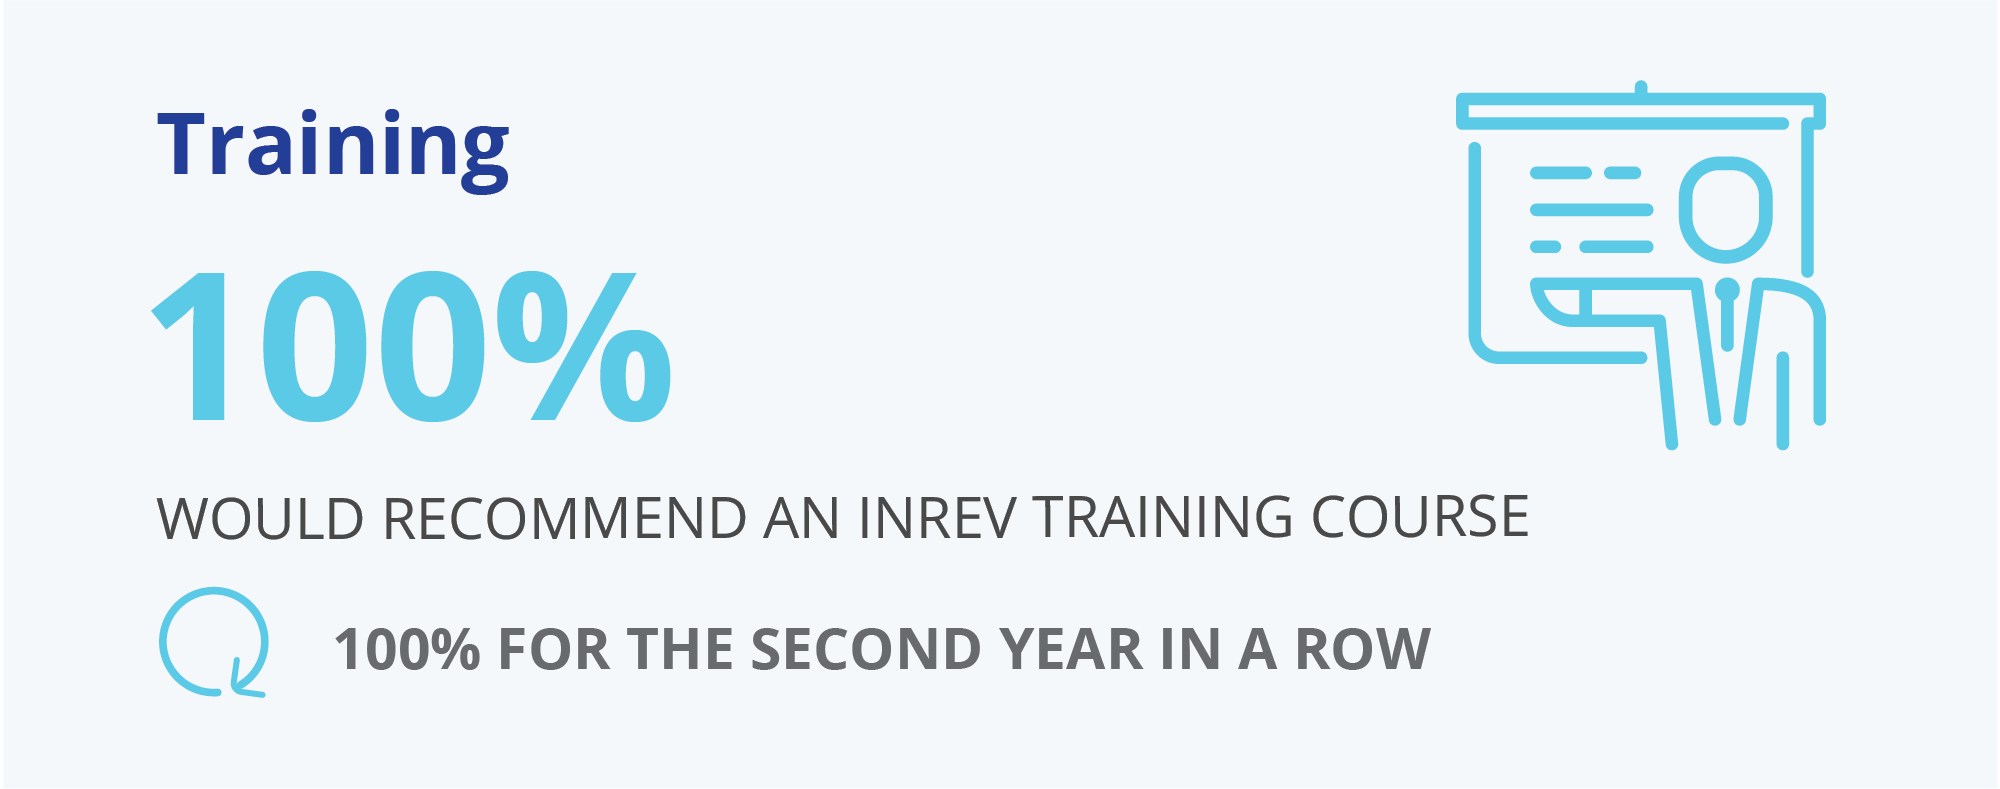 INREV Training